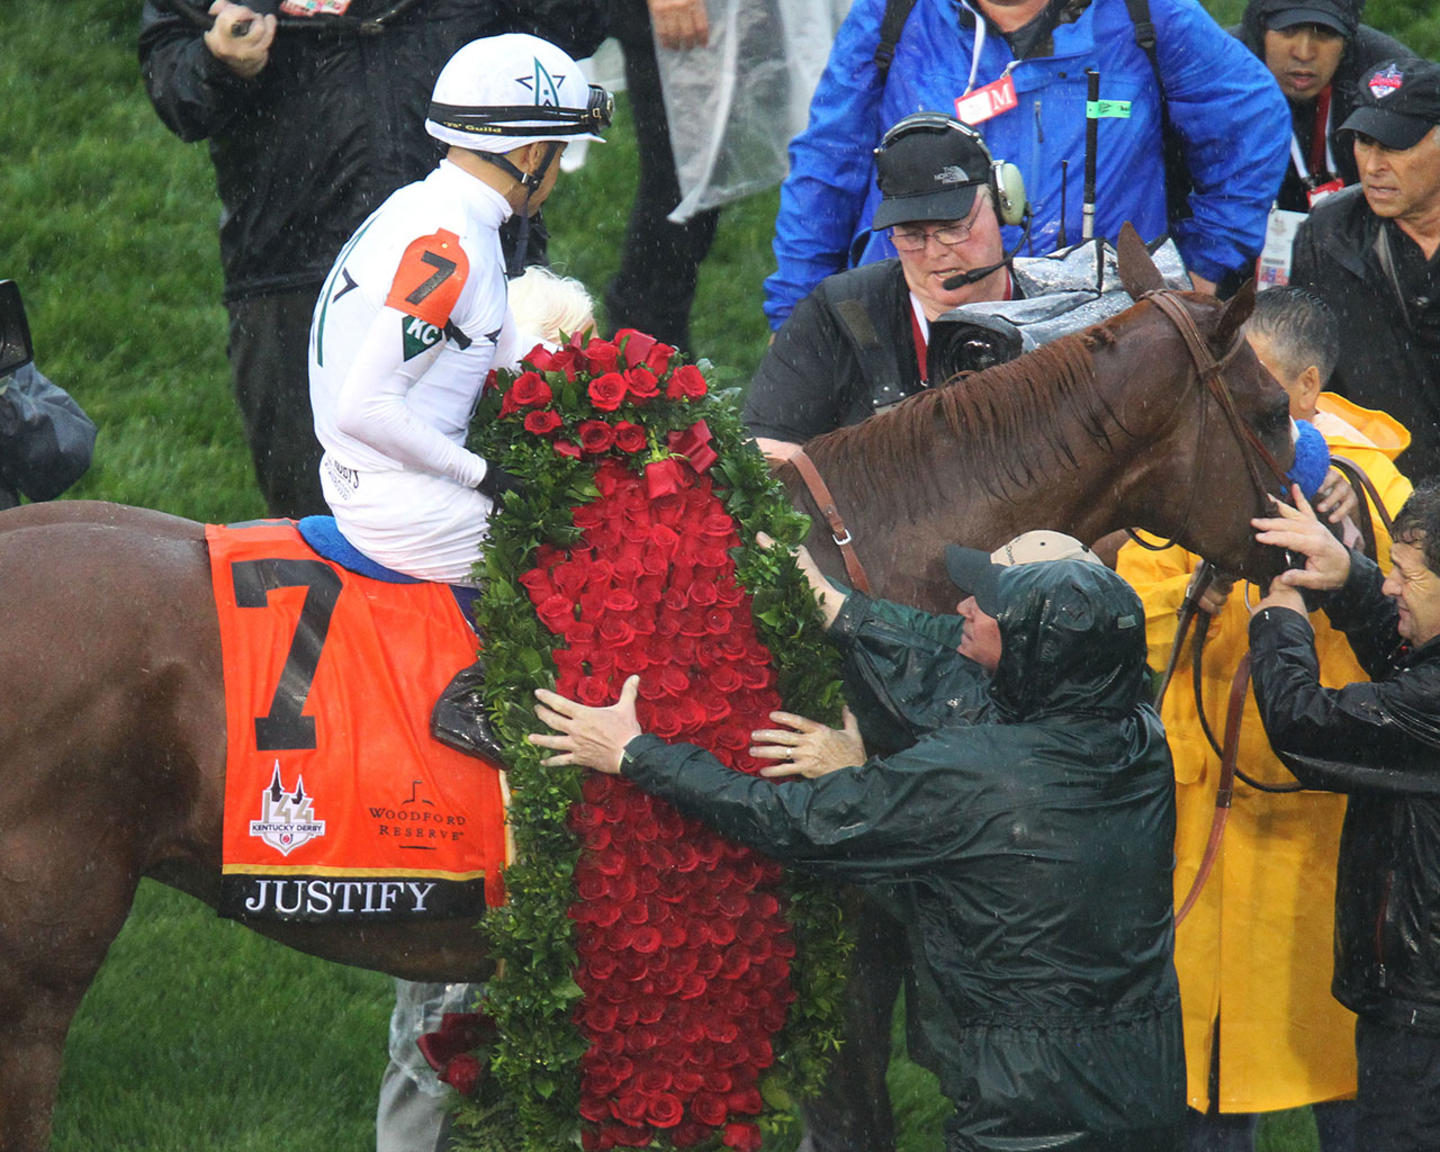 JUSTIFY---The-Kentucky-Derby-G1---144th-Running---05-05-18---R12---CD---Rose-Garland-01